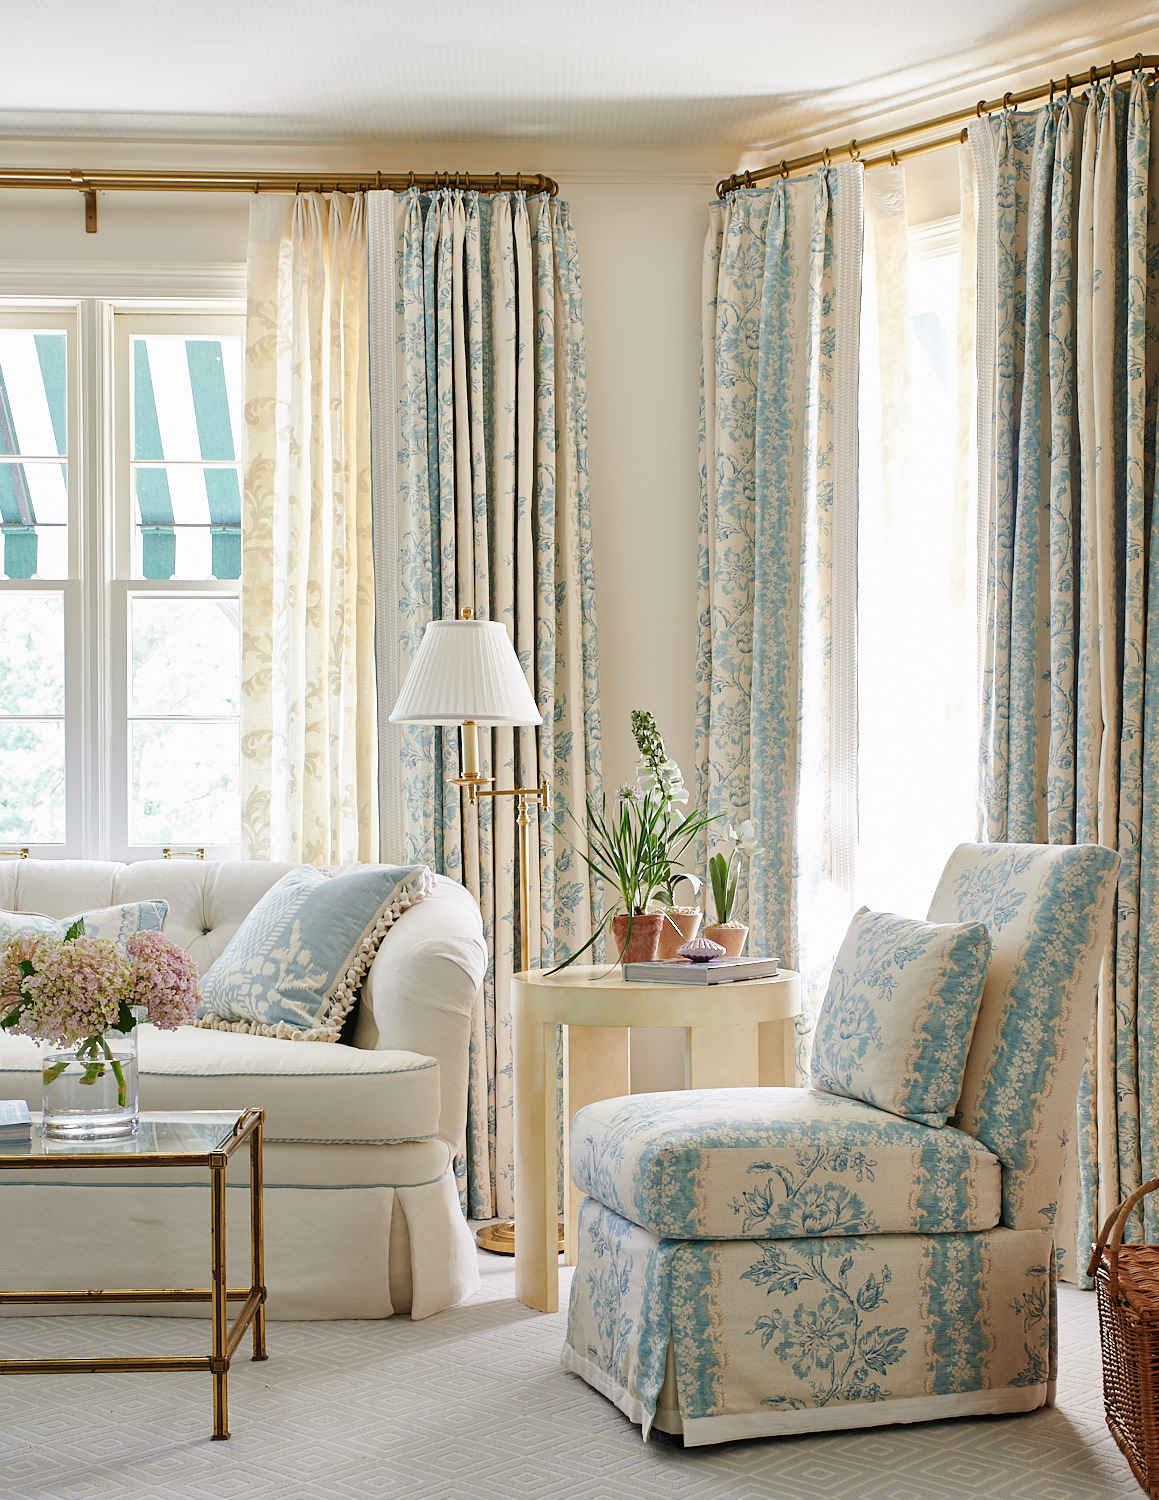 Window sheers and blackout drapes, back-tufted sofa with tasseled pillows